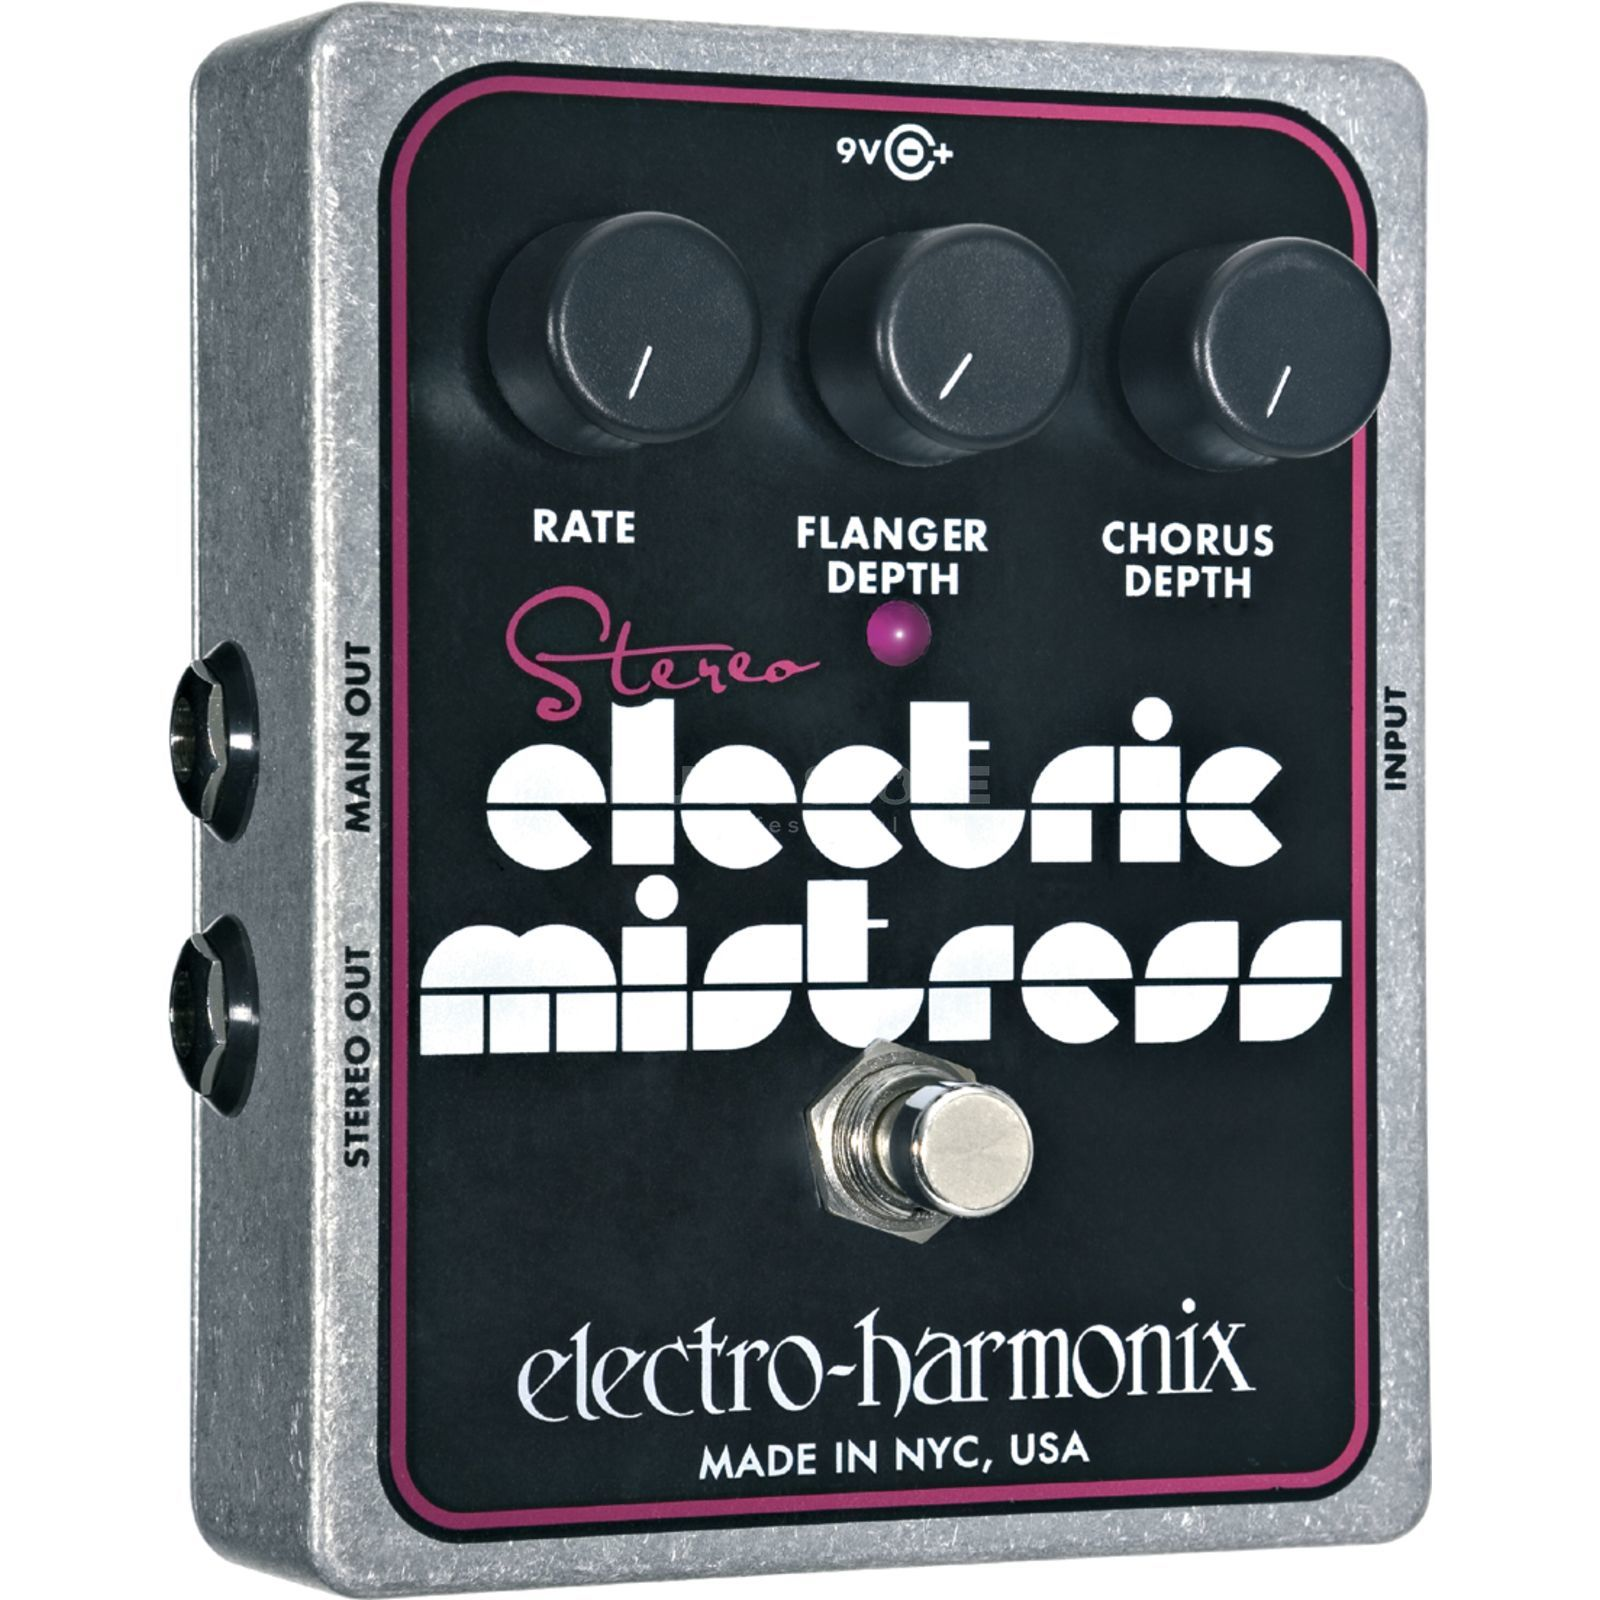 Electro Harmonix Stereo Electric Mistress Flang er Chorus Pedal   Produktbillede